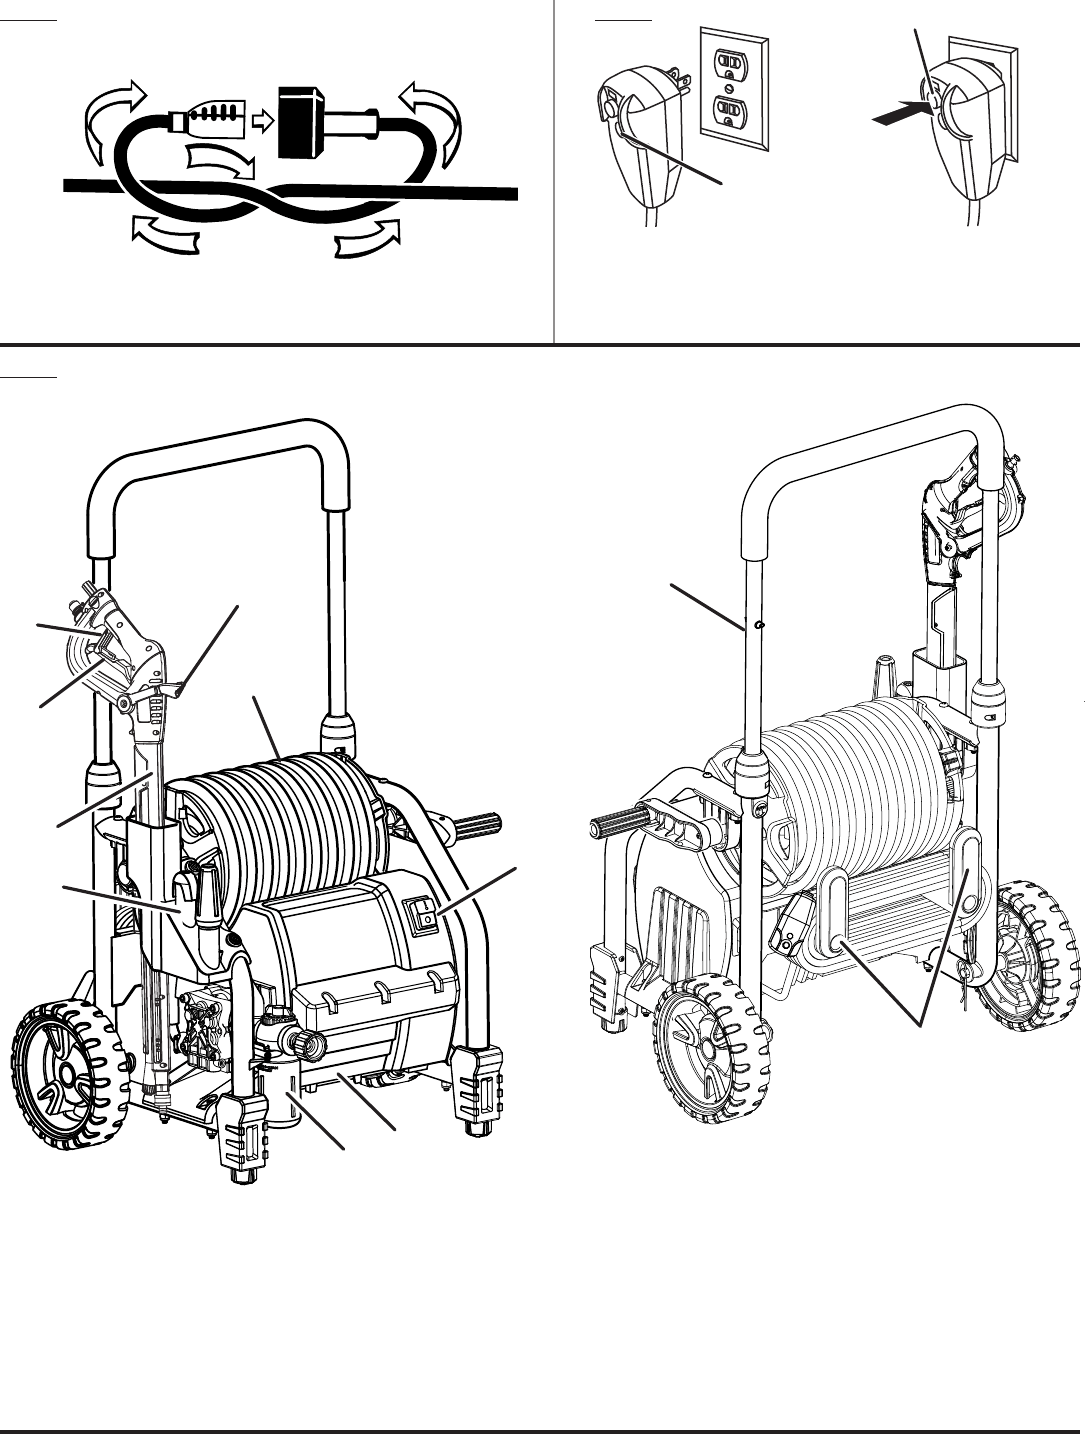 Page 3 of Homelite Pressure Washer UT80720 User Guide